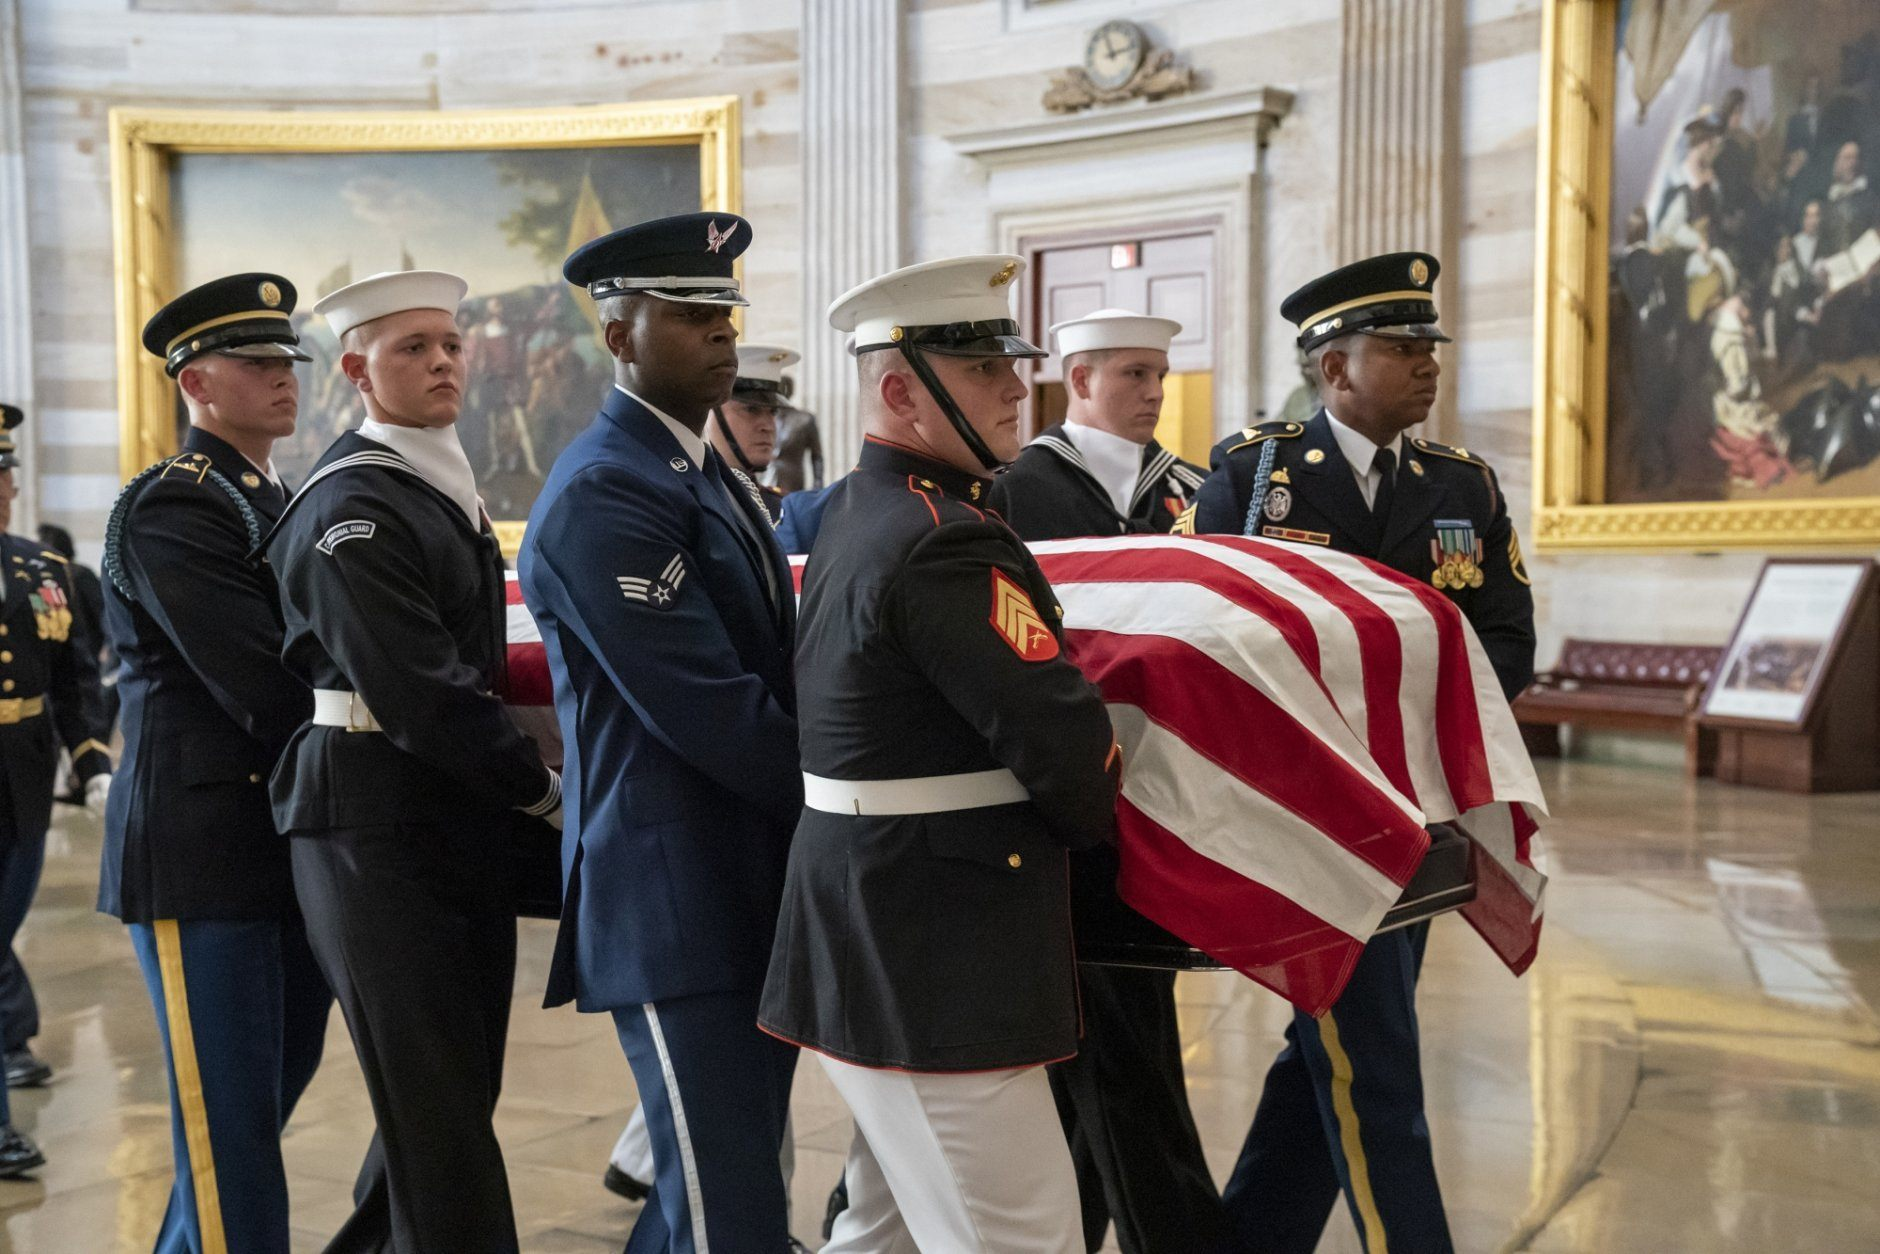 The late Maryland Rep. Elijah Cummings is carried through the Rotunda of the Capitol to lie in state at the Capitol in Washington, Thursday, Oct. 24, 2019. The Maryland congressman and civil rights champion died Thursday, Oct. 17, at age 68 of complications from long-standing health issues. (AP Photo/J. Scott Applewhite)